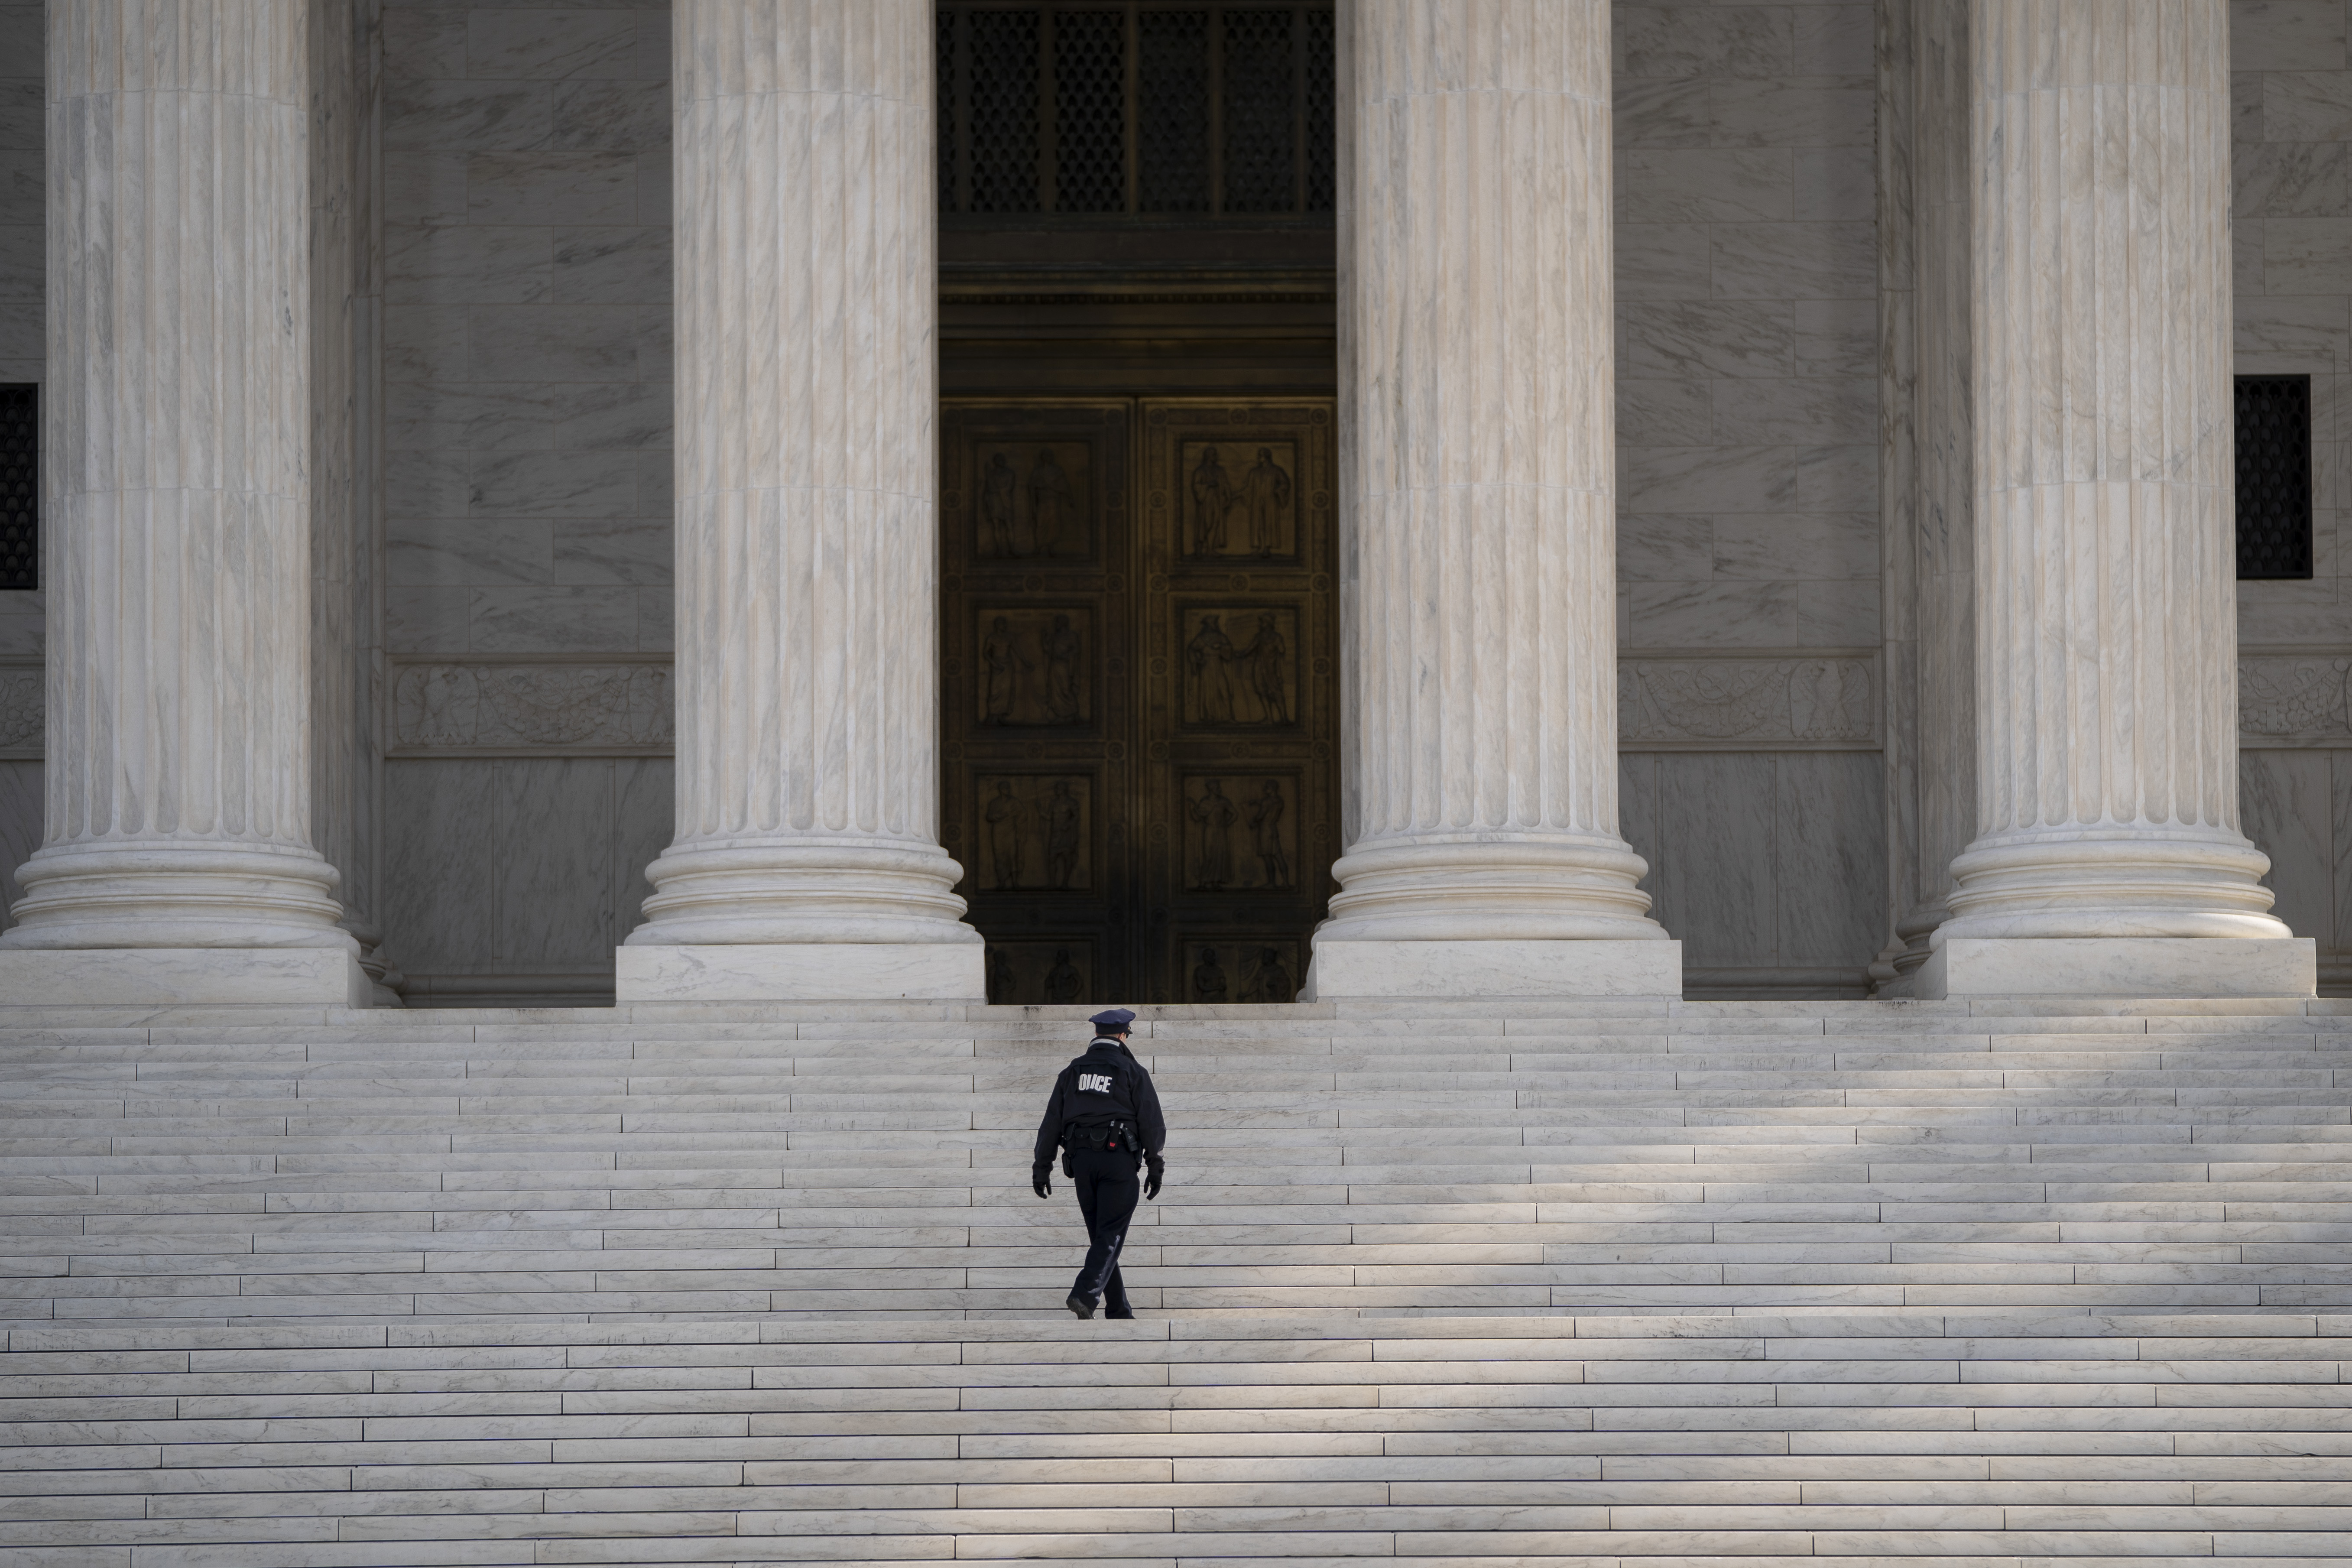 A Supreme Court police officer walks up the steps at the U.S. Supreme Court on March 16, 2020 in Washington, DC.